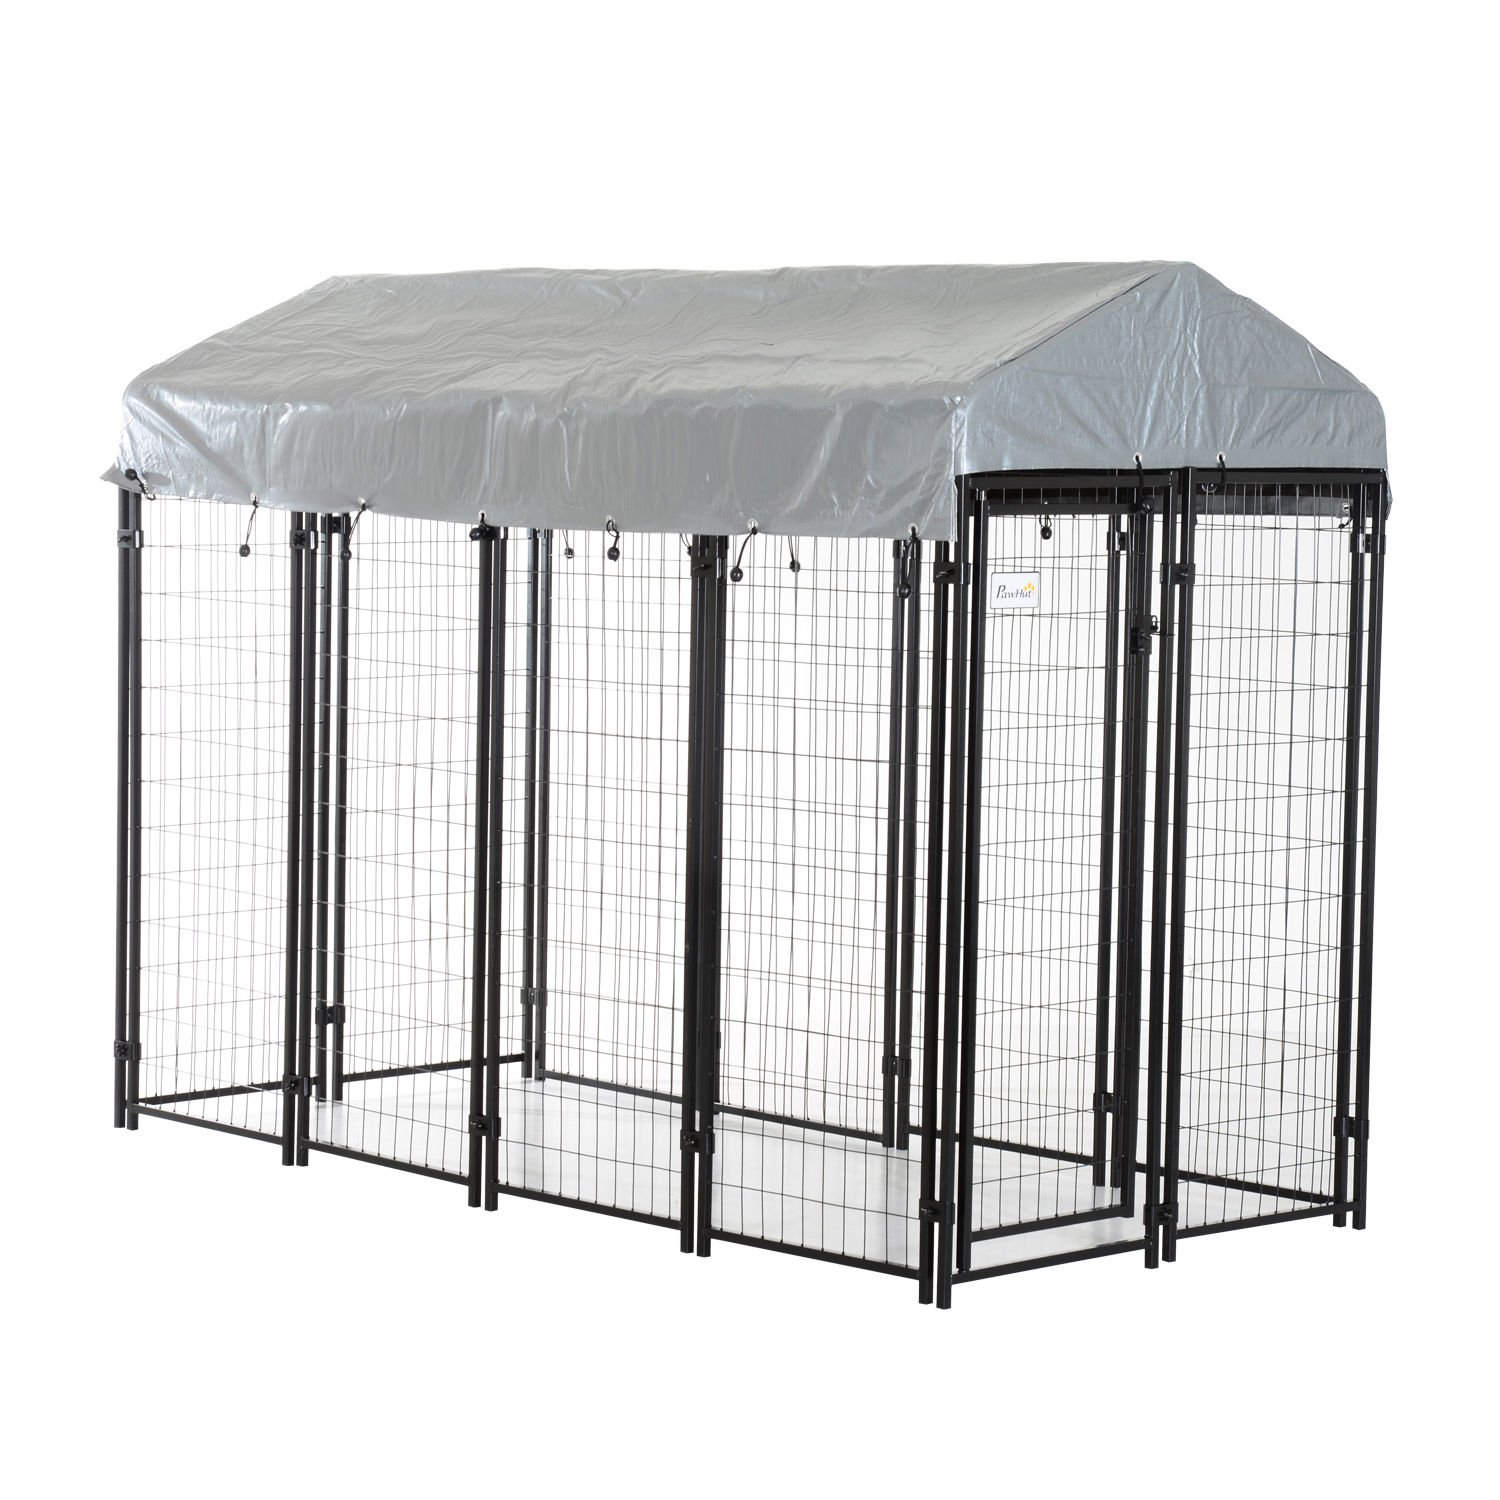 PawHut 97'' x 46'' Outdoor Galvanized Metal Dog Kennel Playpen with UV and Water Resistant Tarp Cover by PawHut